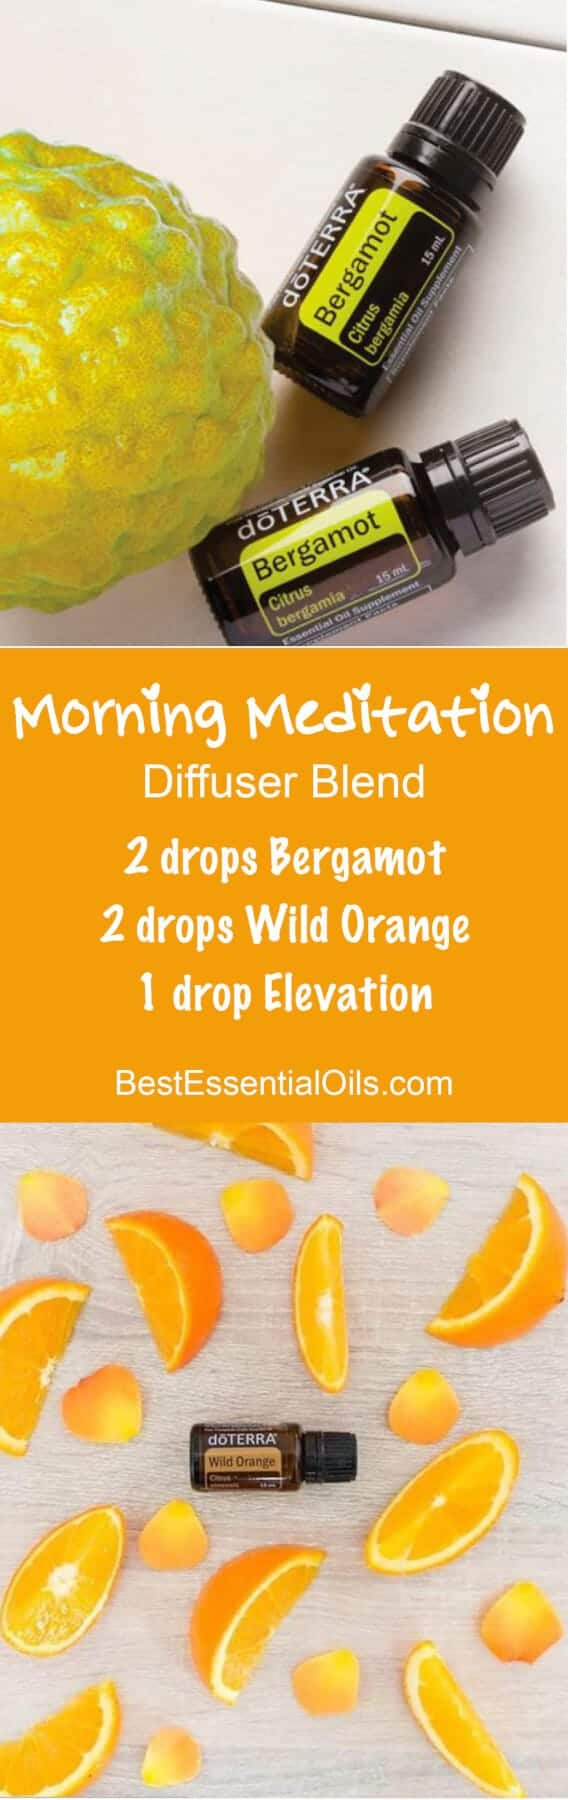 Morning Meditation doTERRA Diffuser Blend